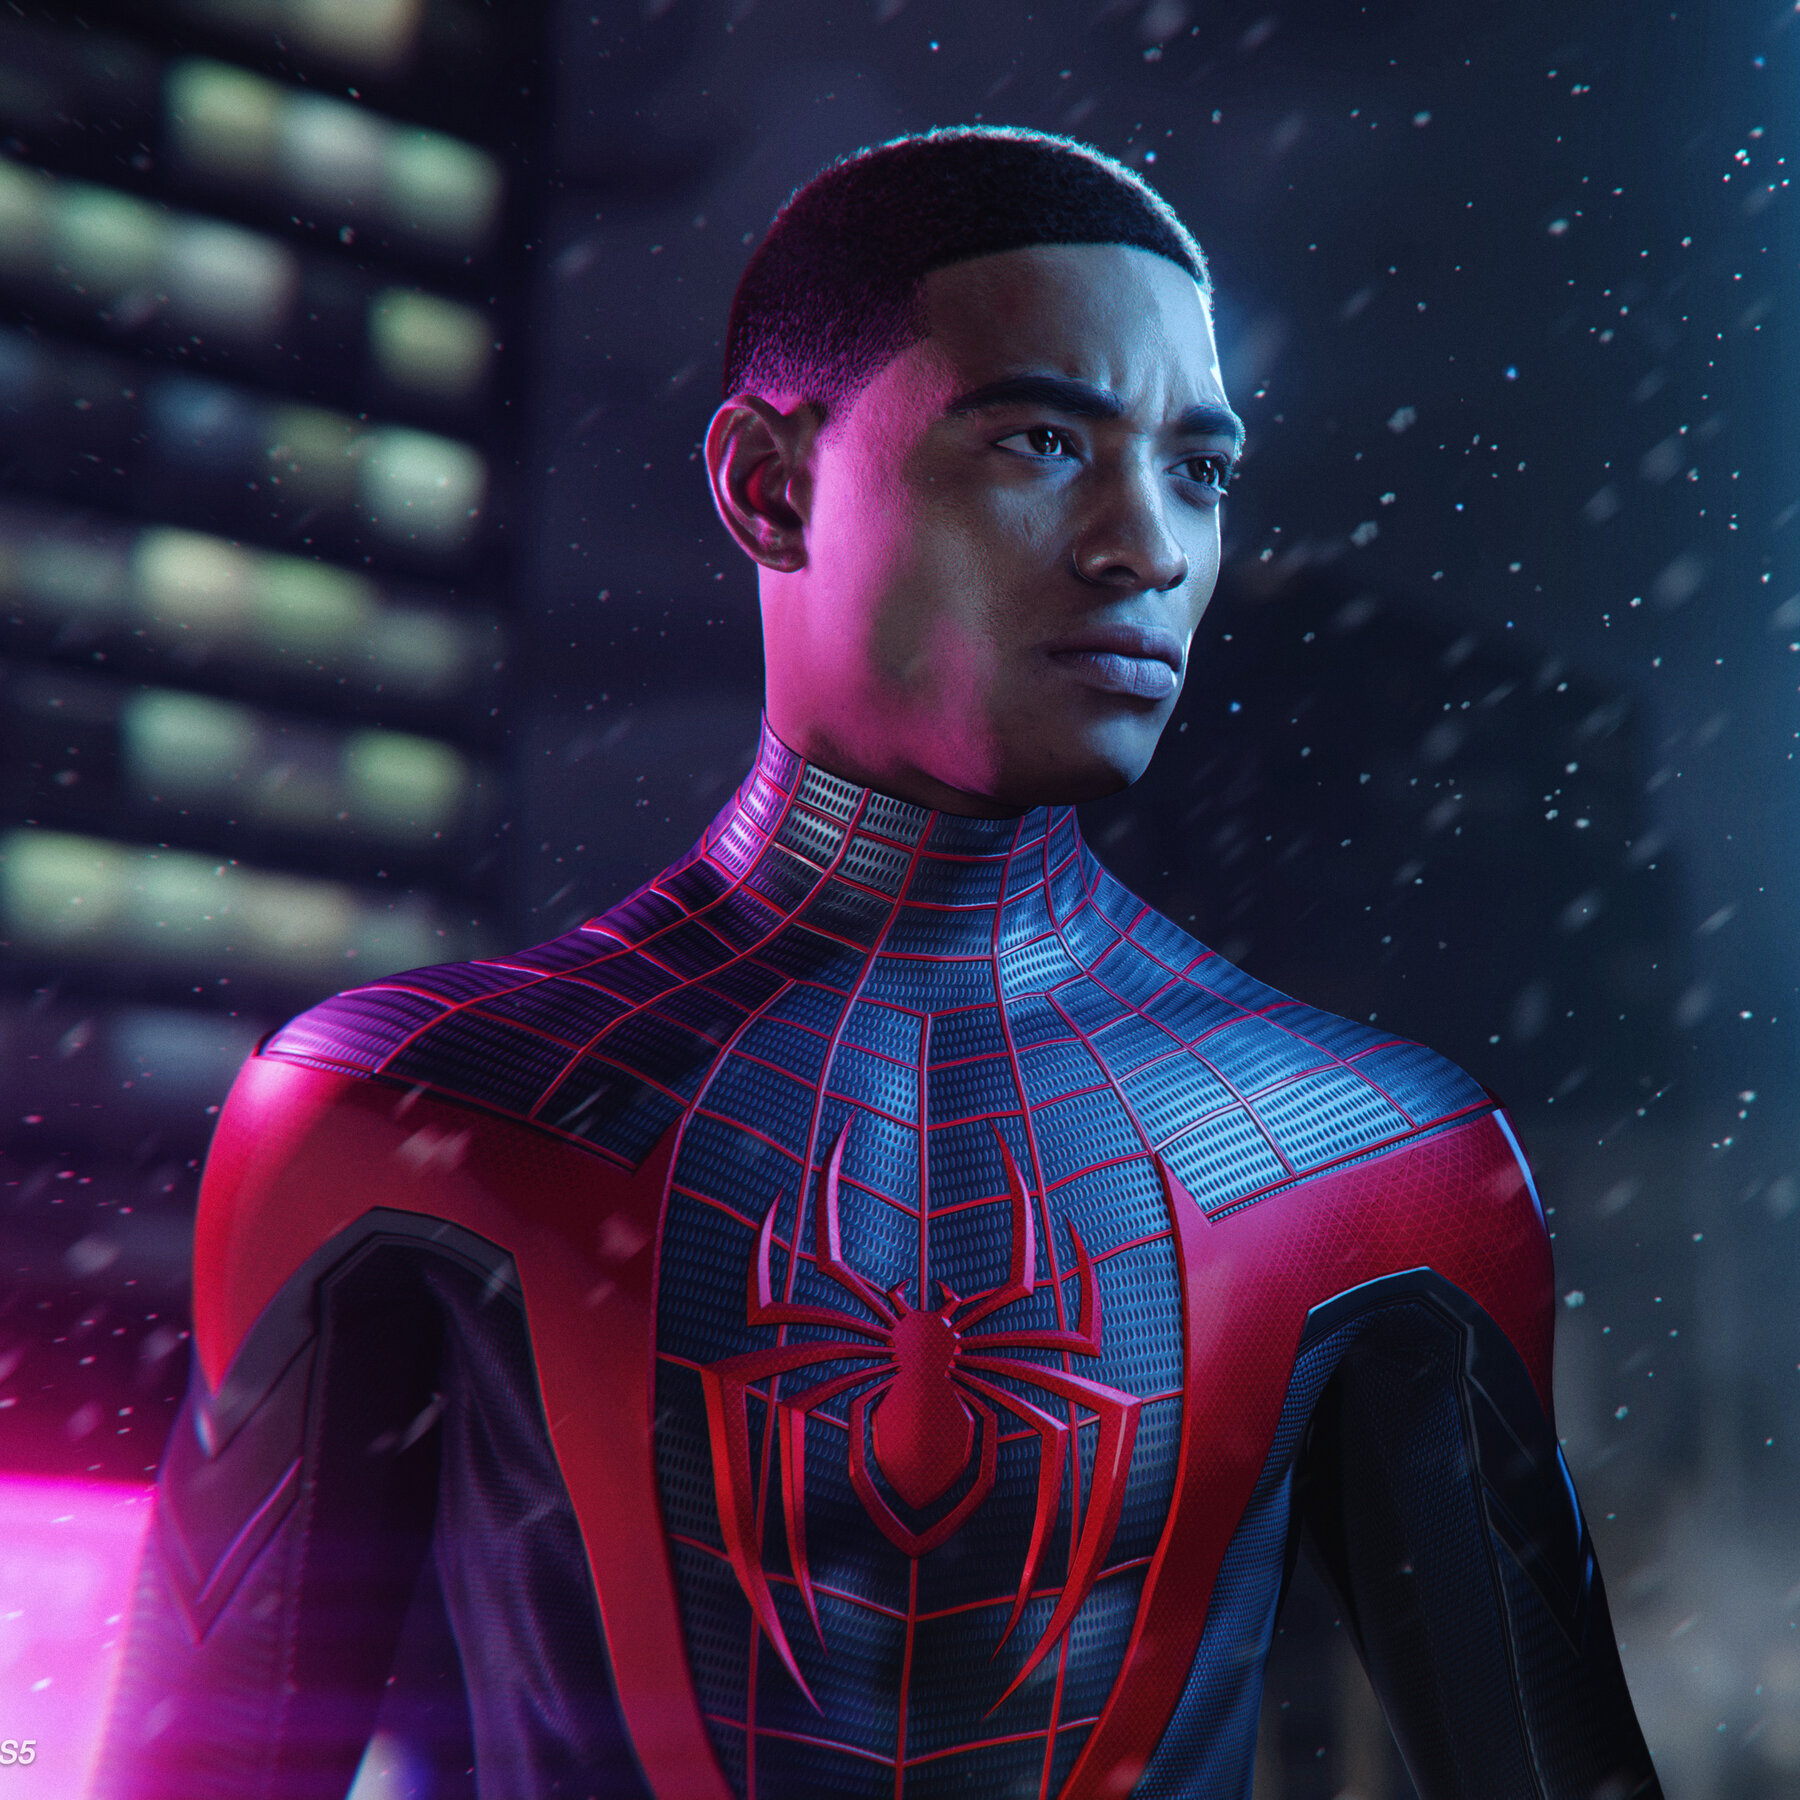 Miles Morales wears his Spider-Man costume without the mask